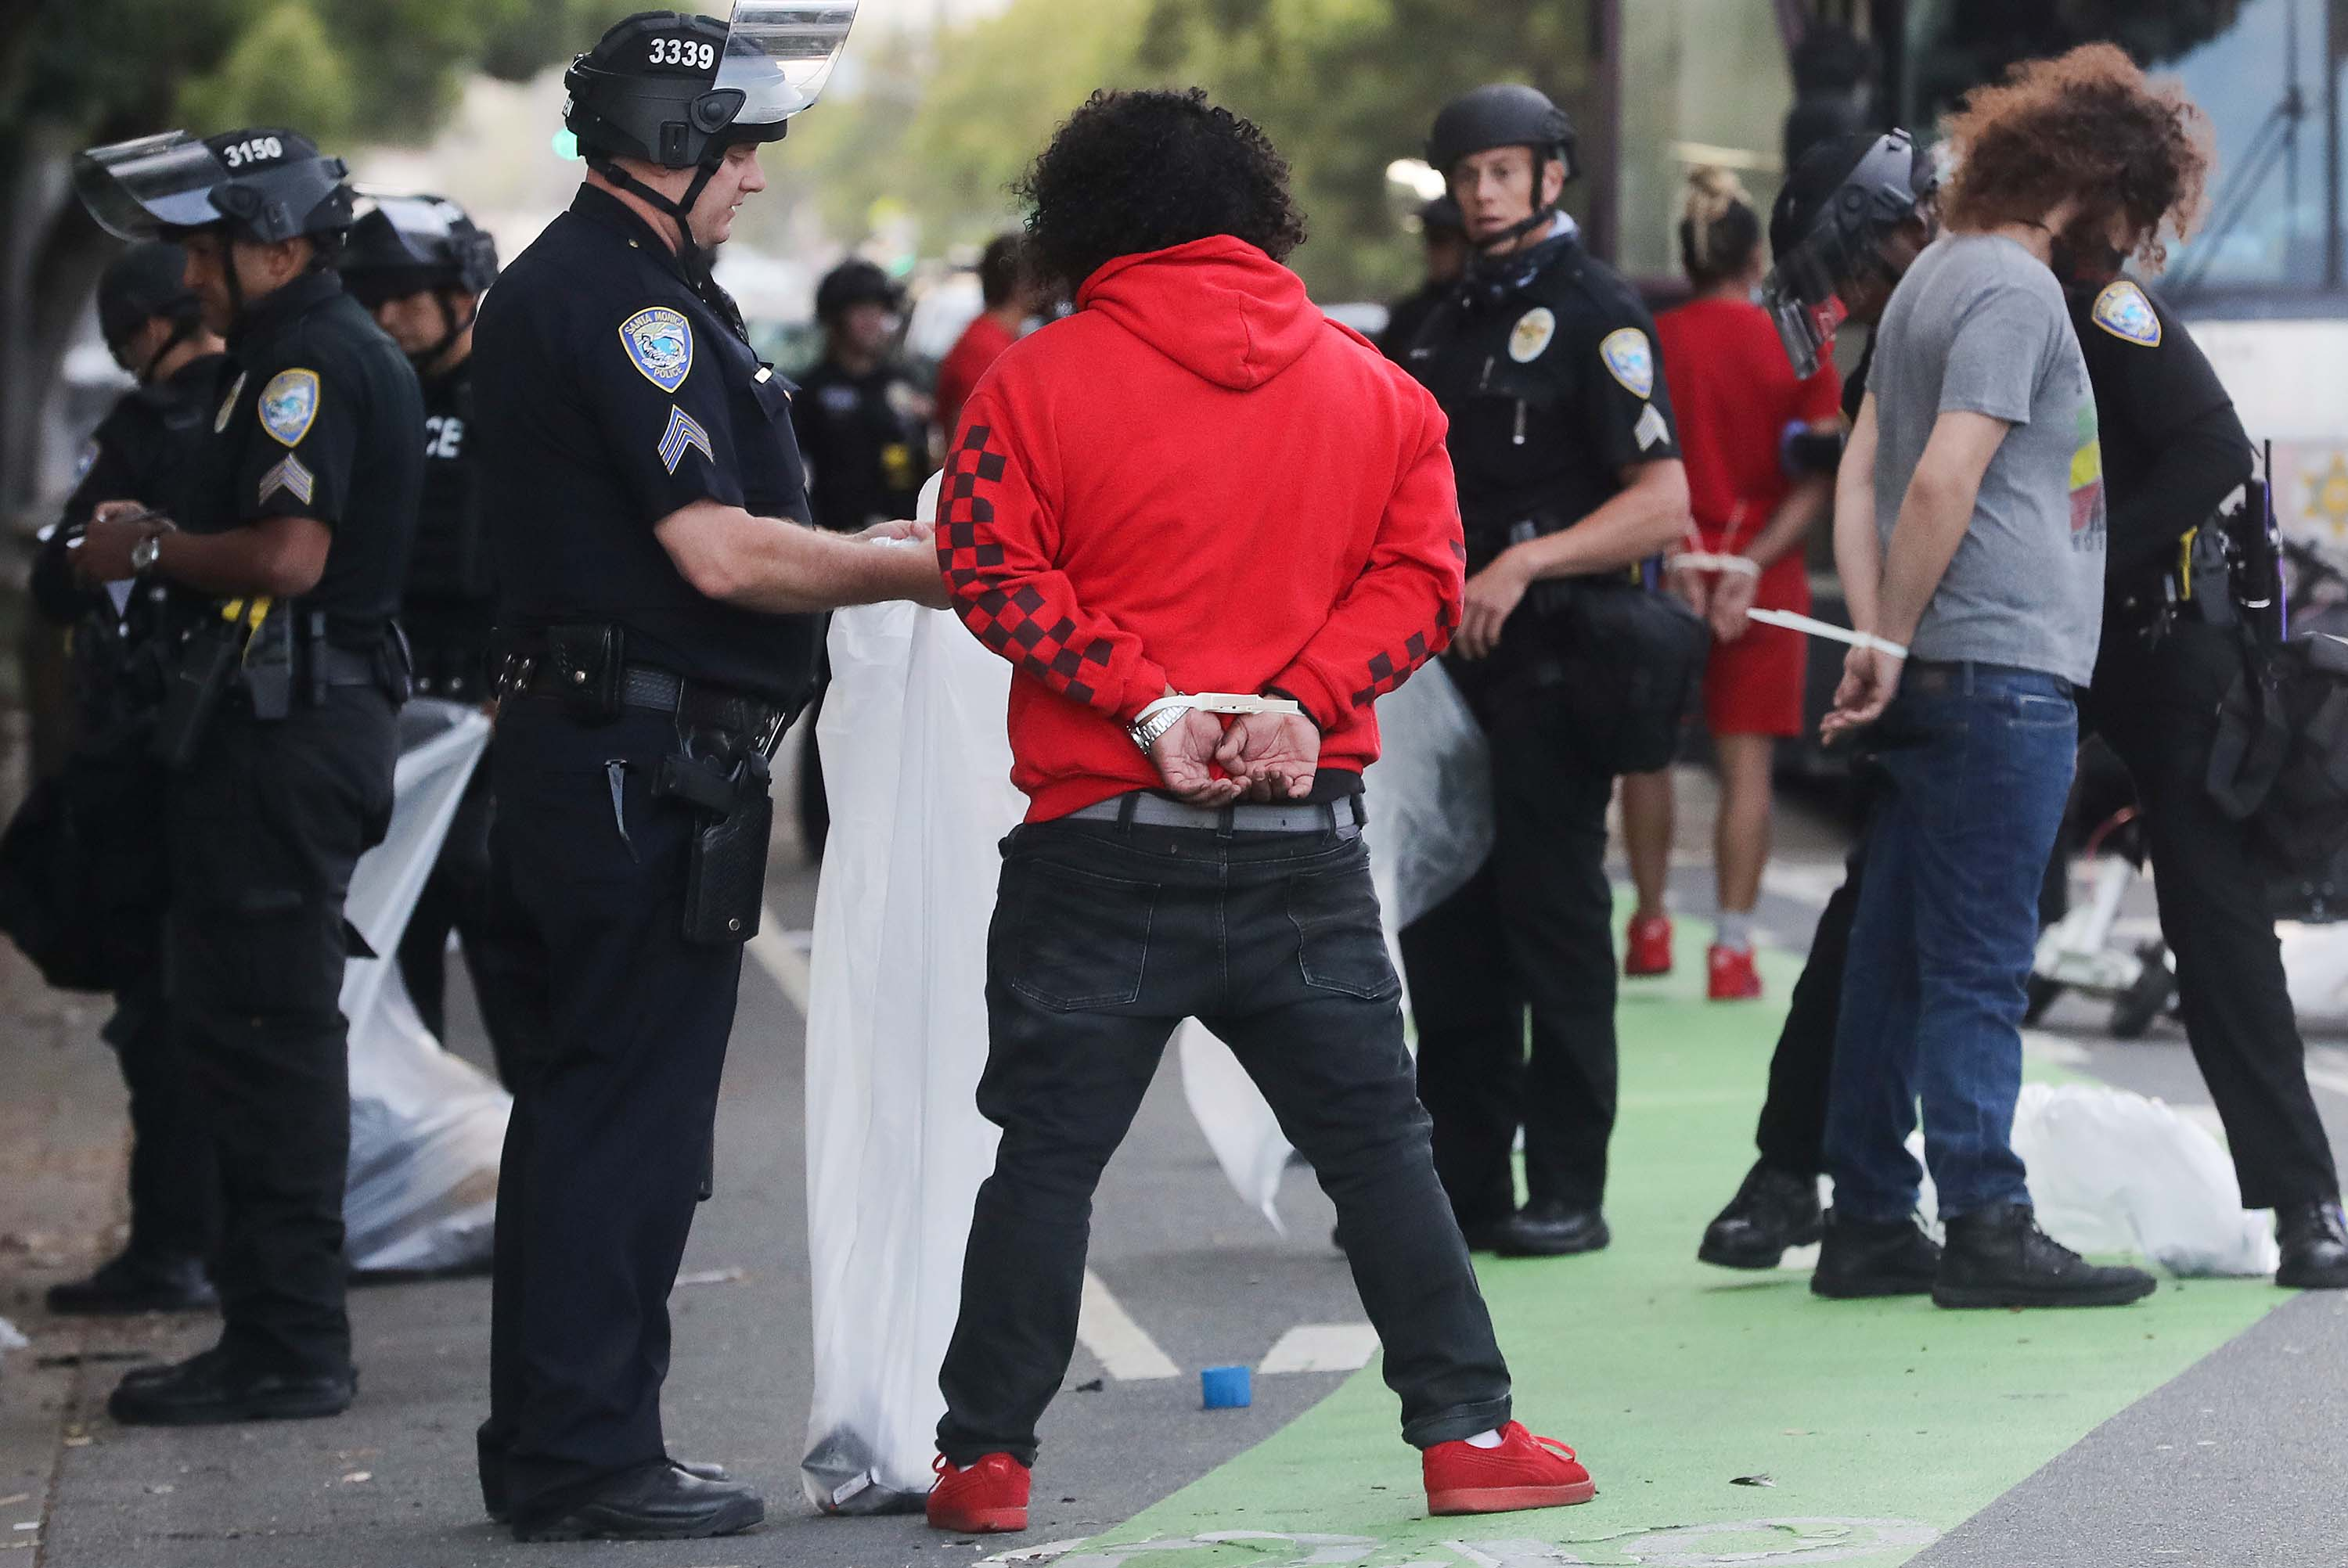 Police arrest people amid demonstrations and some ransacking in Santa Monica, California, in the aftermath of George Floyd's death on May 31.